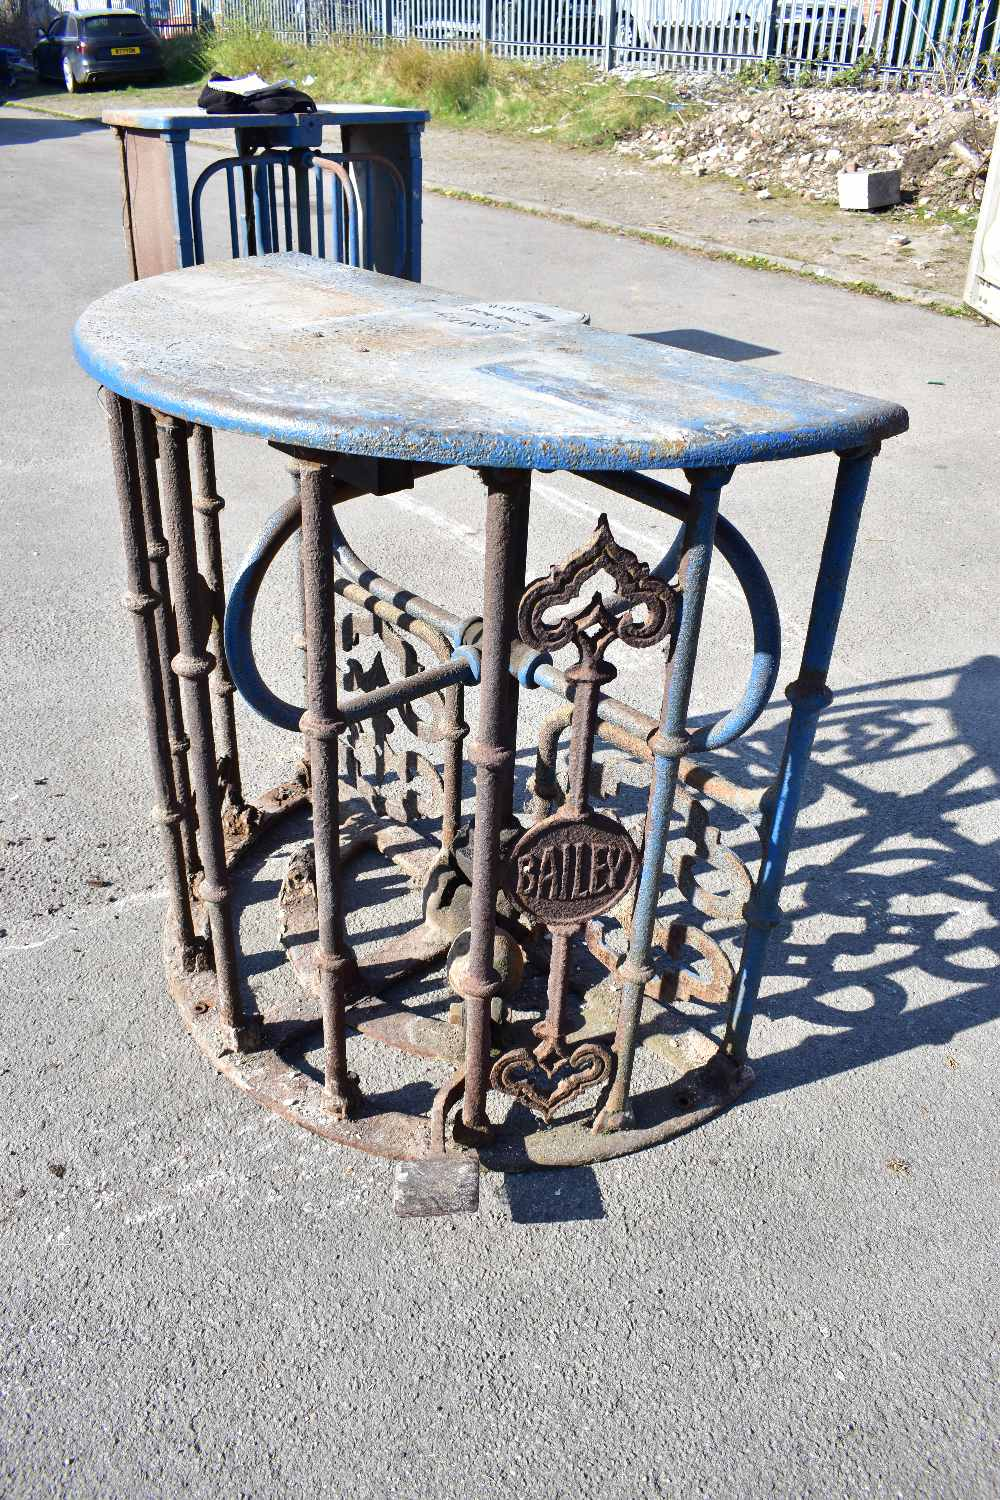 MACCLESFIELD TOWN FOOTBALL CLUB INTEREST; two early 20th century cast iron turnstiles by Bailey - Image 10 of 15